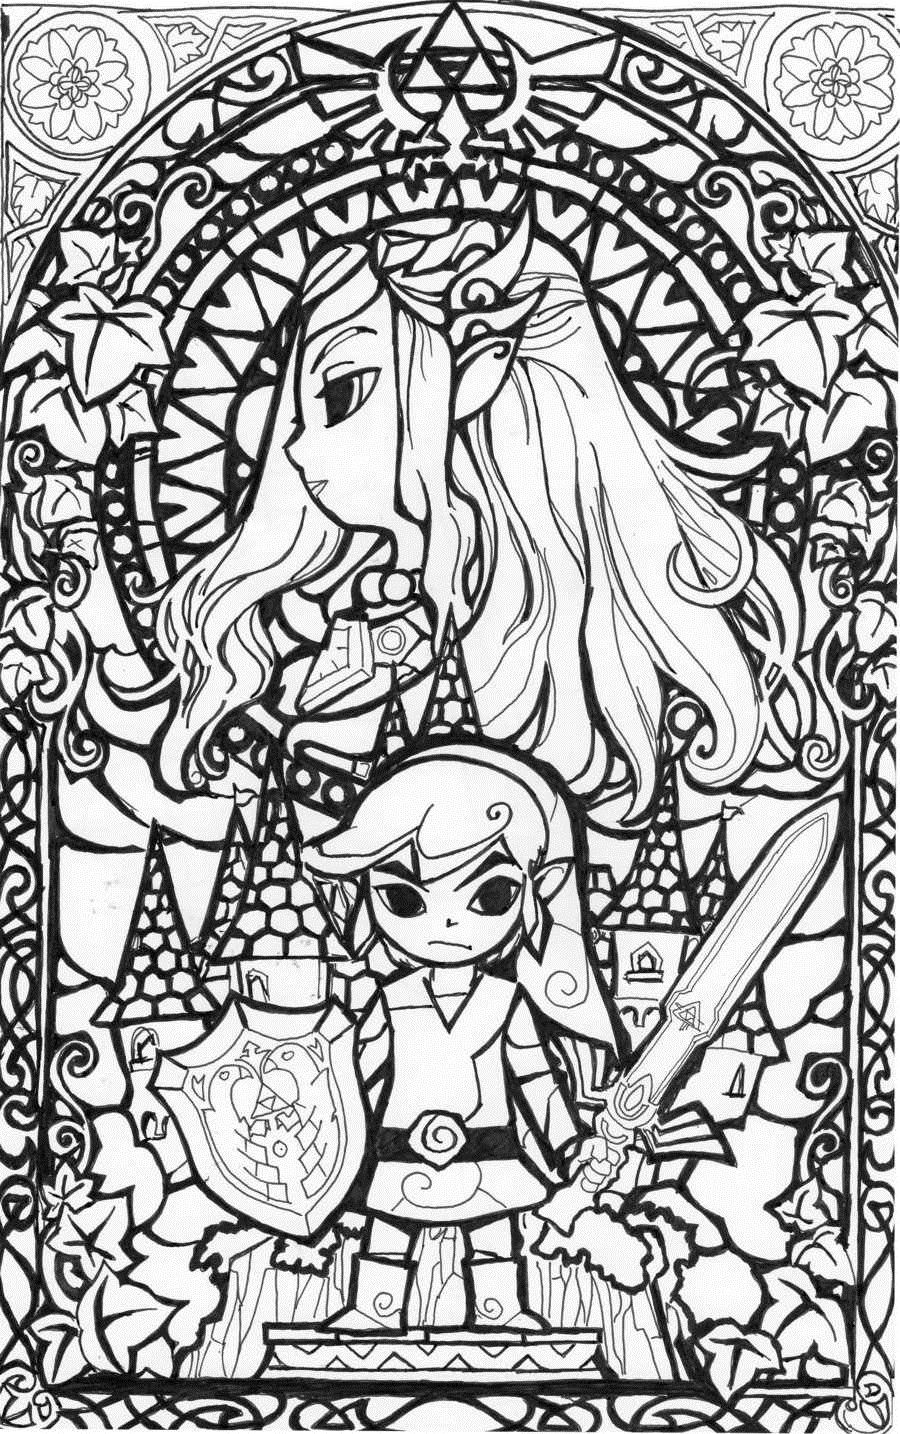 Legend Of Zelda Cool Coloring Pages Coloring Pages Free Coloring Pages